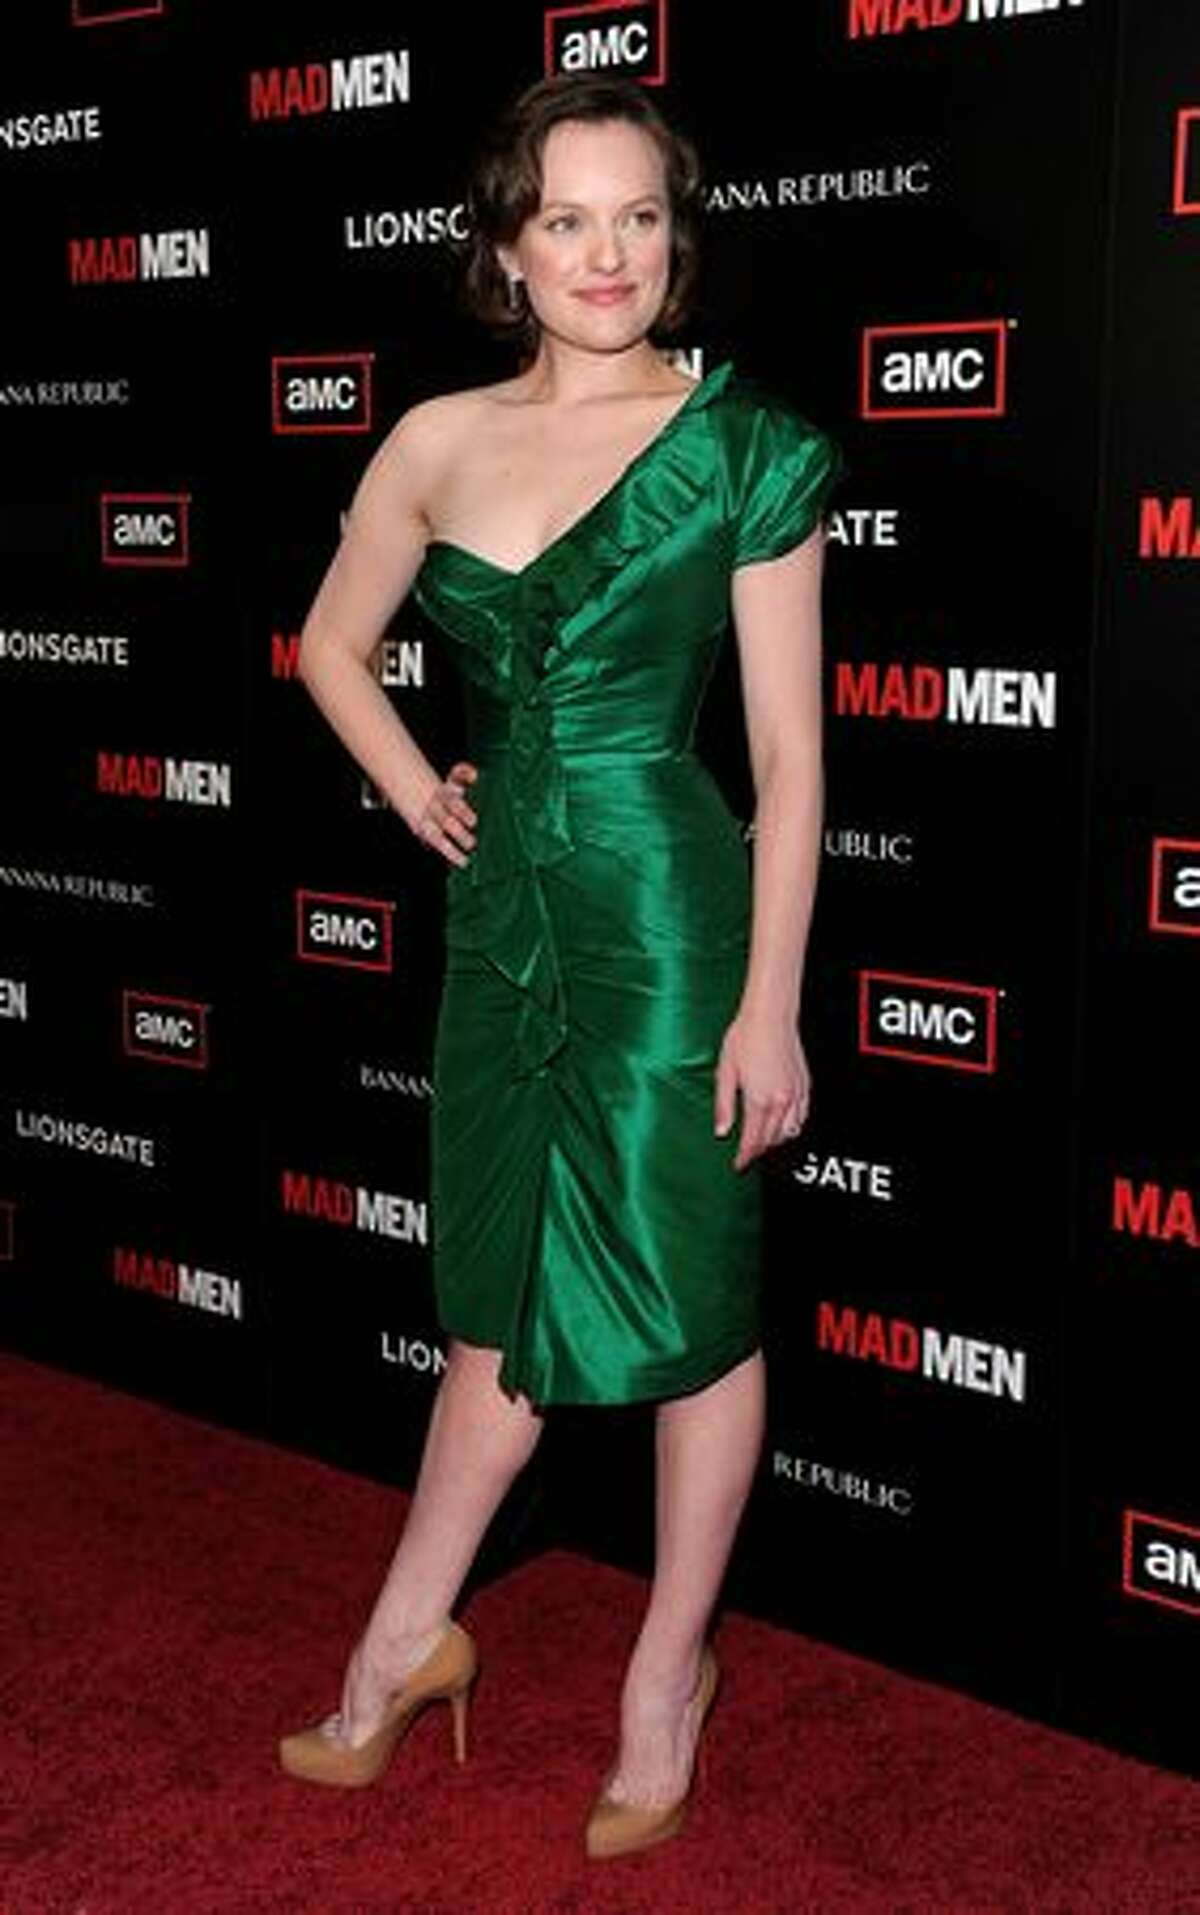 """Actress Elisabeth Moss, who plays Peggy Olson on """"Mad Men"""", arrives to the show's season 4 premiere in Hollywood, California."""